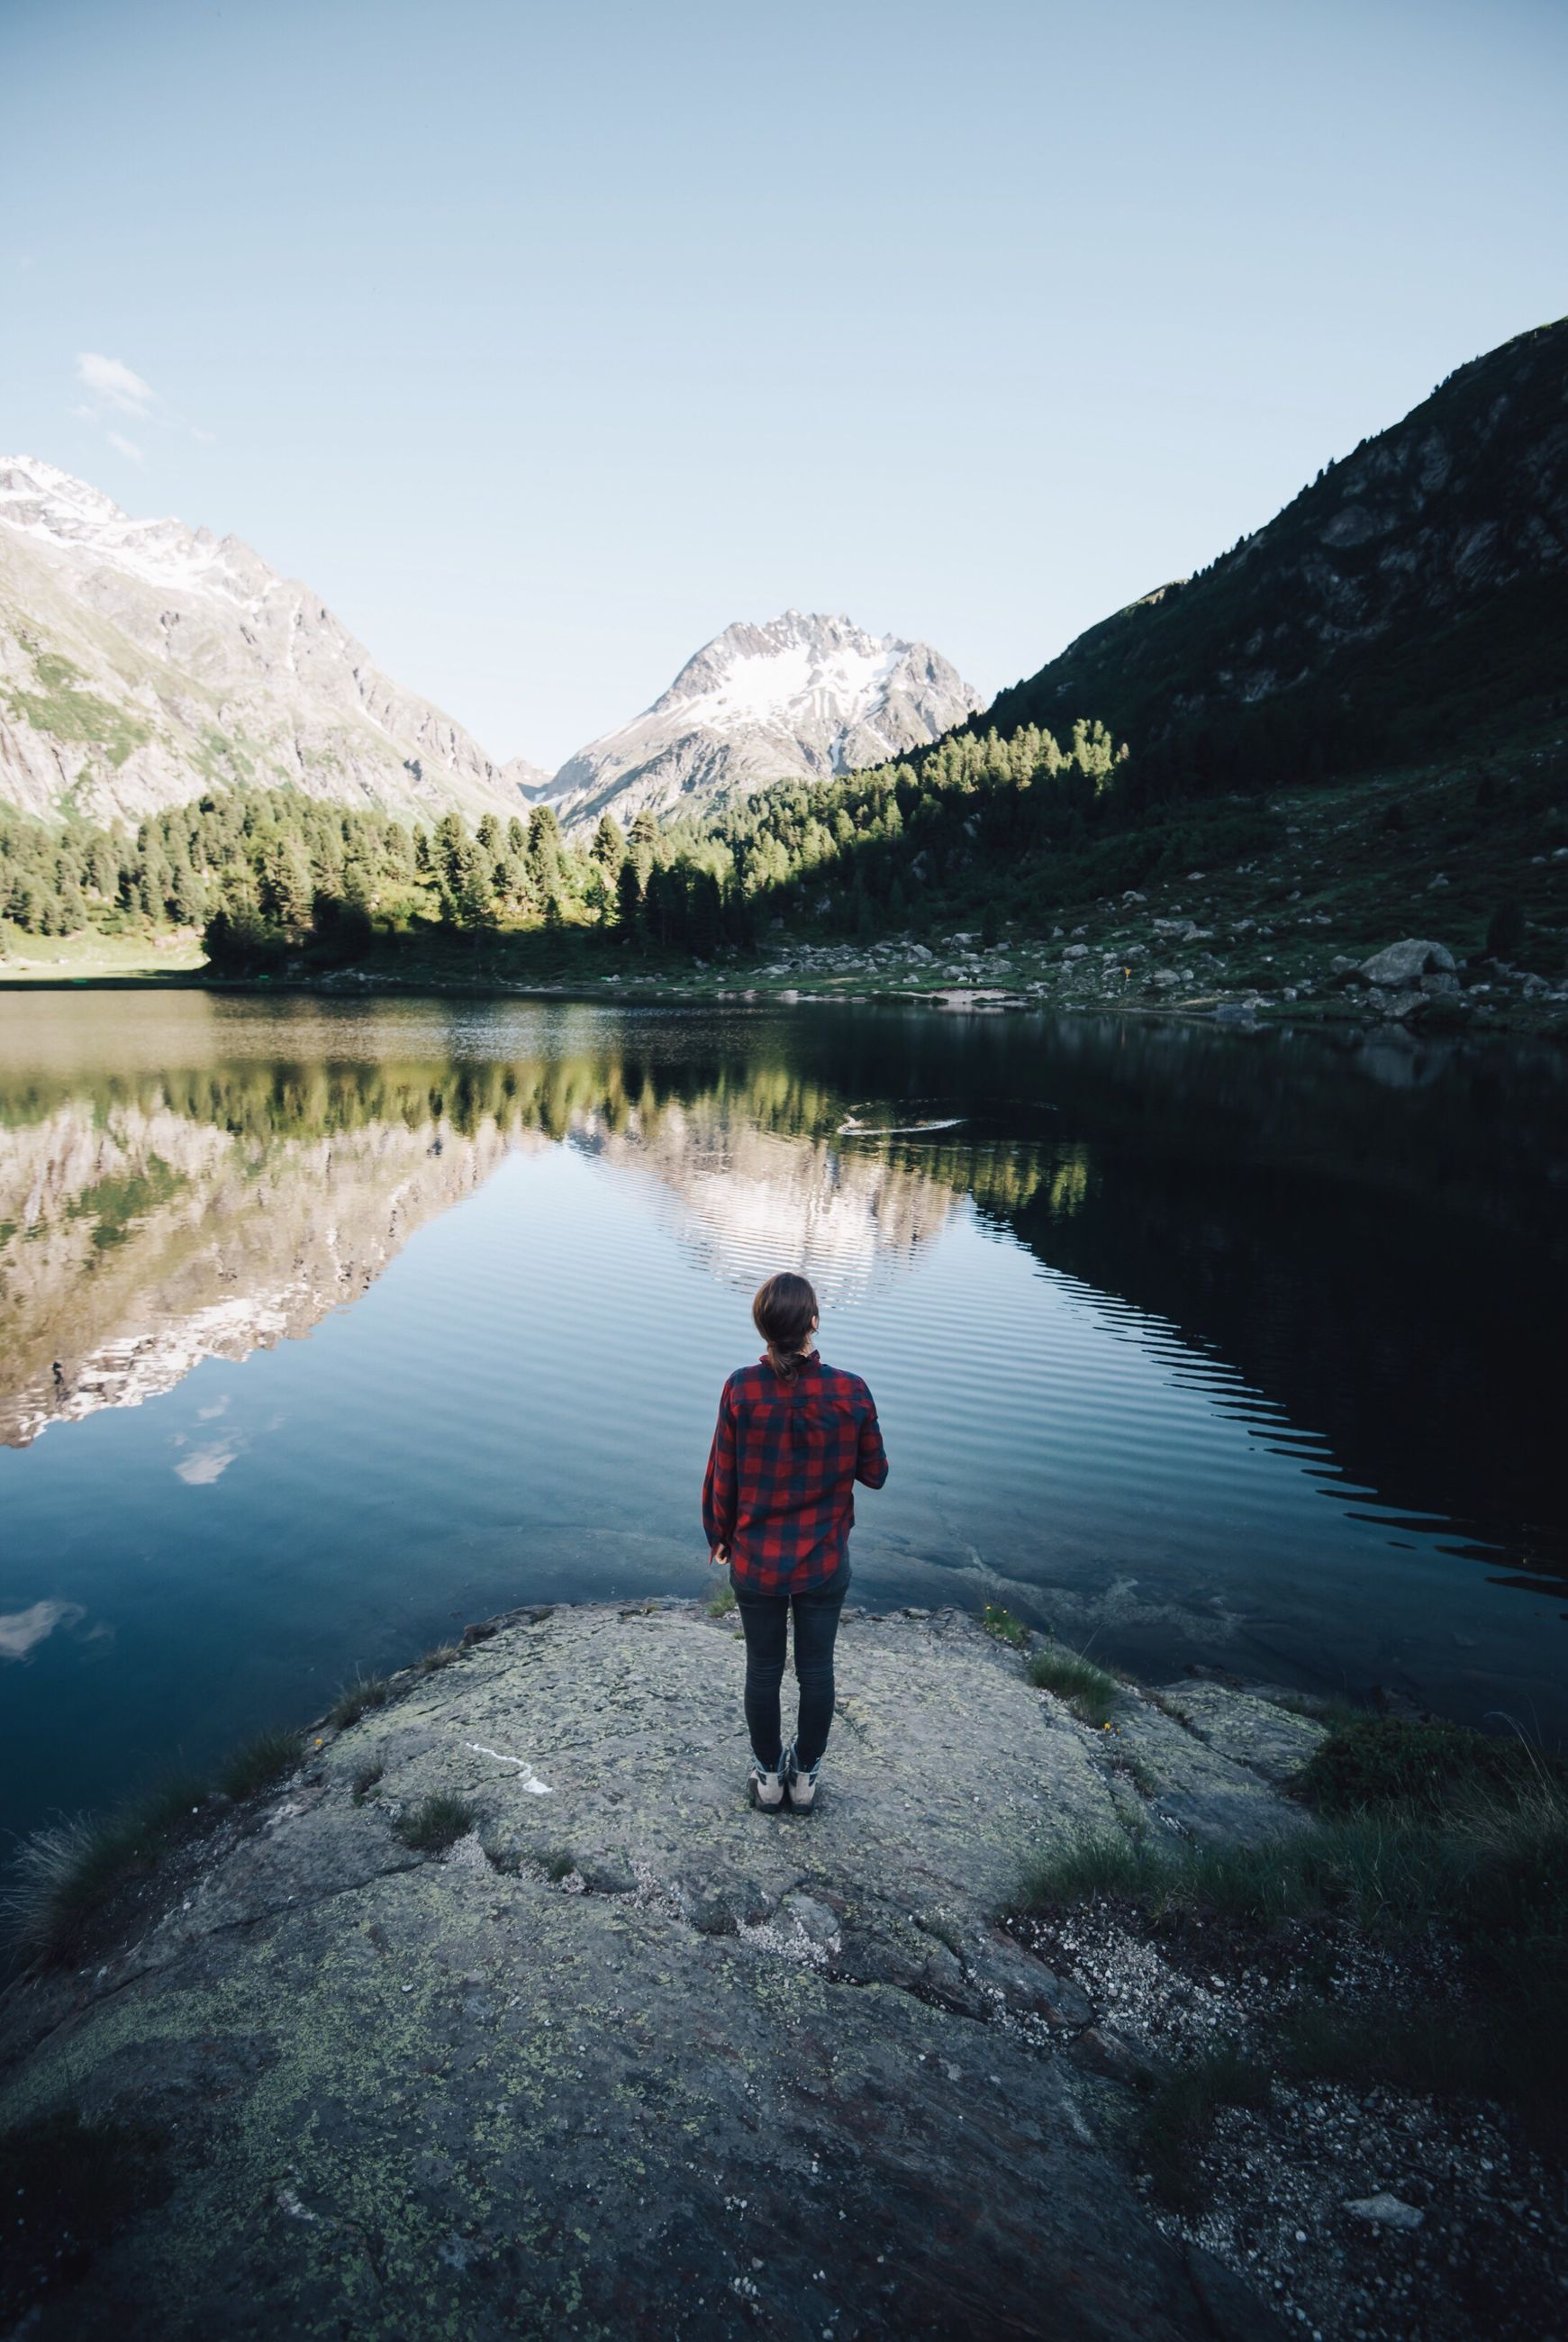 reflection, rear view, lake, full length, water, one person, one man only, nature, leisure activity, only men, beauty in nature, sky, men, people, grass, adults only, outdoors, mountain, young adult, day, adult